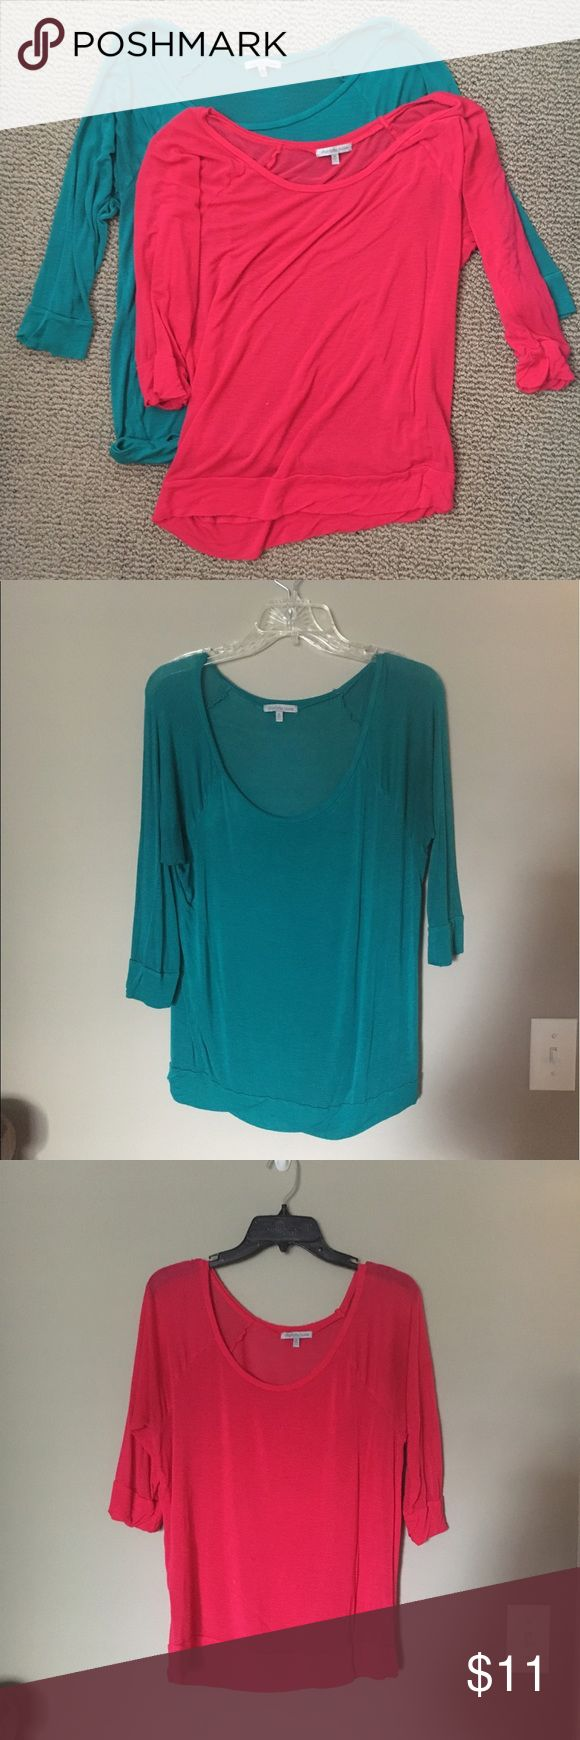 Charlotte Russe Slouchy Top Bundle Two size M Charlotte Russe slouchy tops - sleeves close to three quarter sleeves. Super stretchy, can be adjusted to hang off the shoulder more. One pink and one blue-green, very comfortable! Smoke free home Charlotte Russe Tops